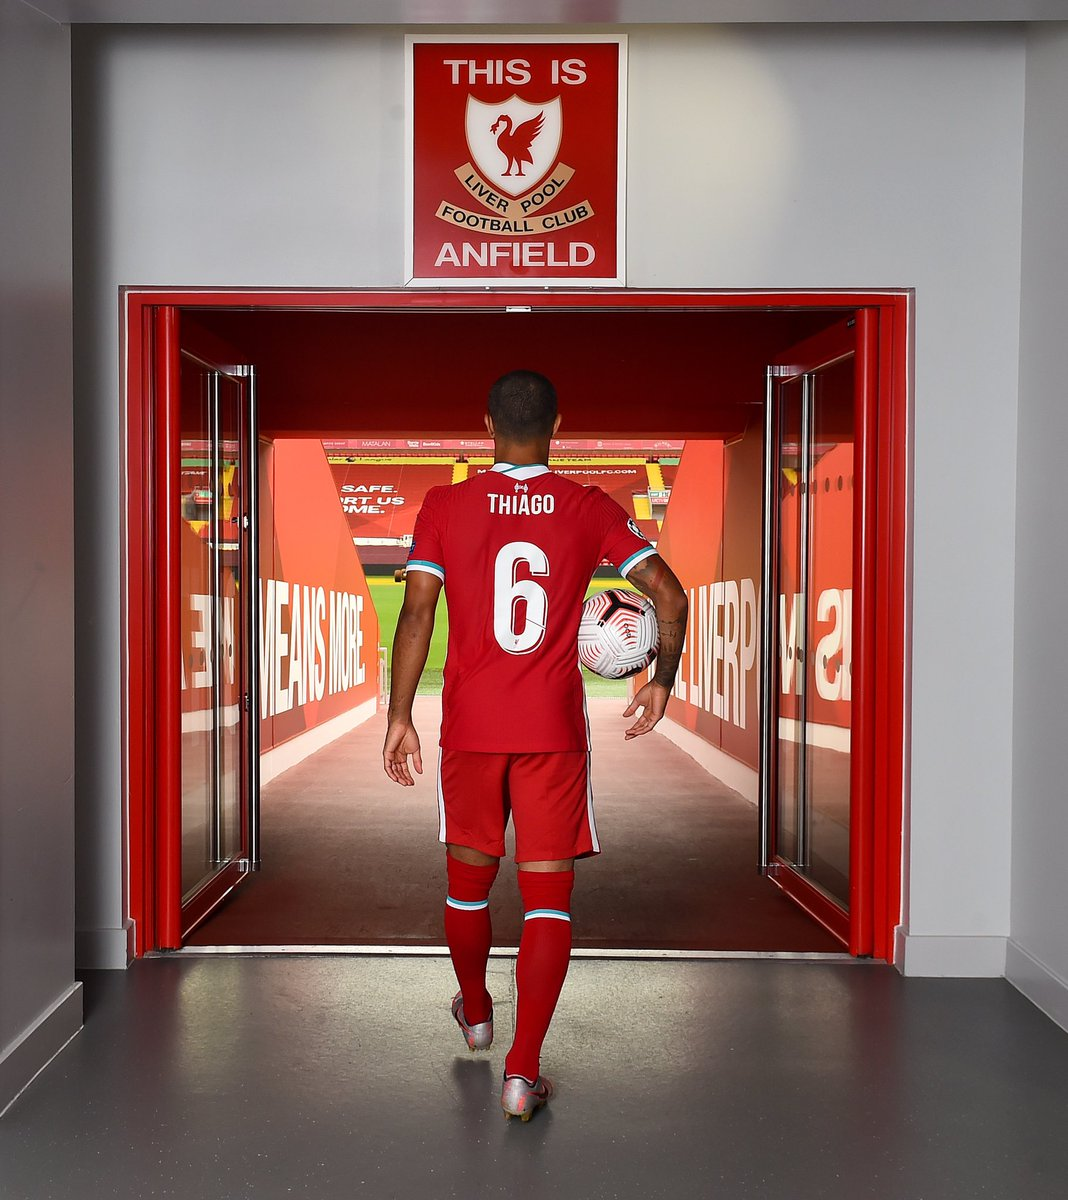 This is Anfield. Challenge accepted! 🙌🏽 UP THE REDS! 🔴 @LFC  #YNWA https://t.co/LriS587qRs